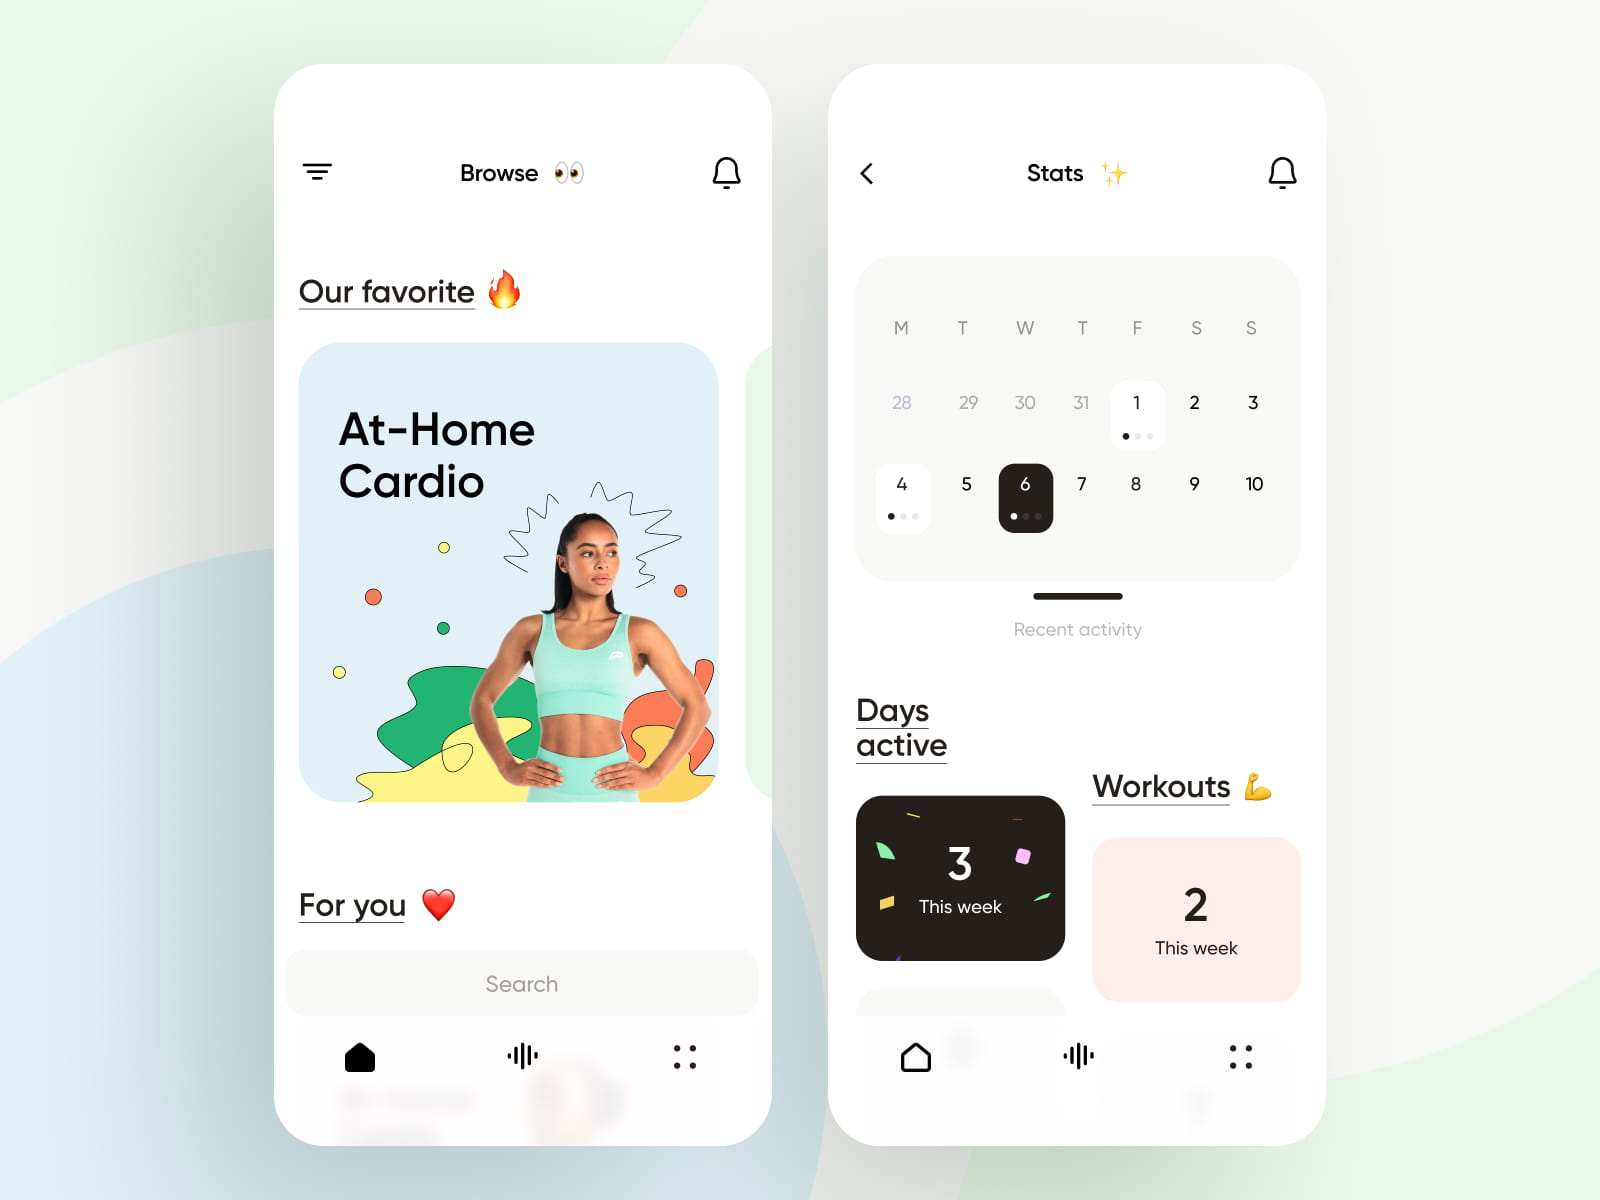 Workout calendar scheduling in mobile app